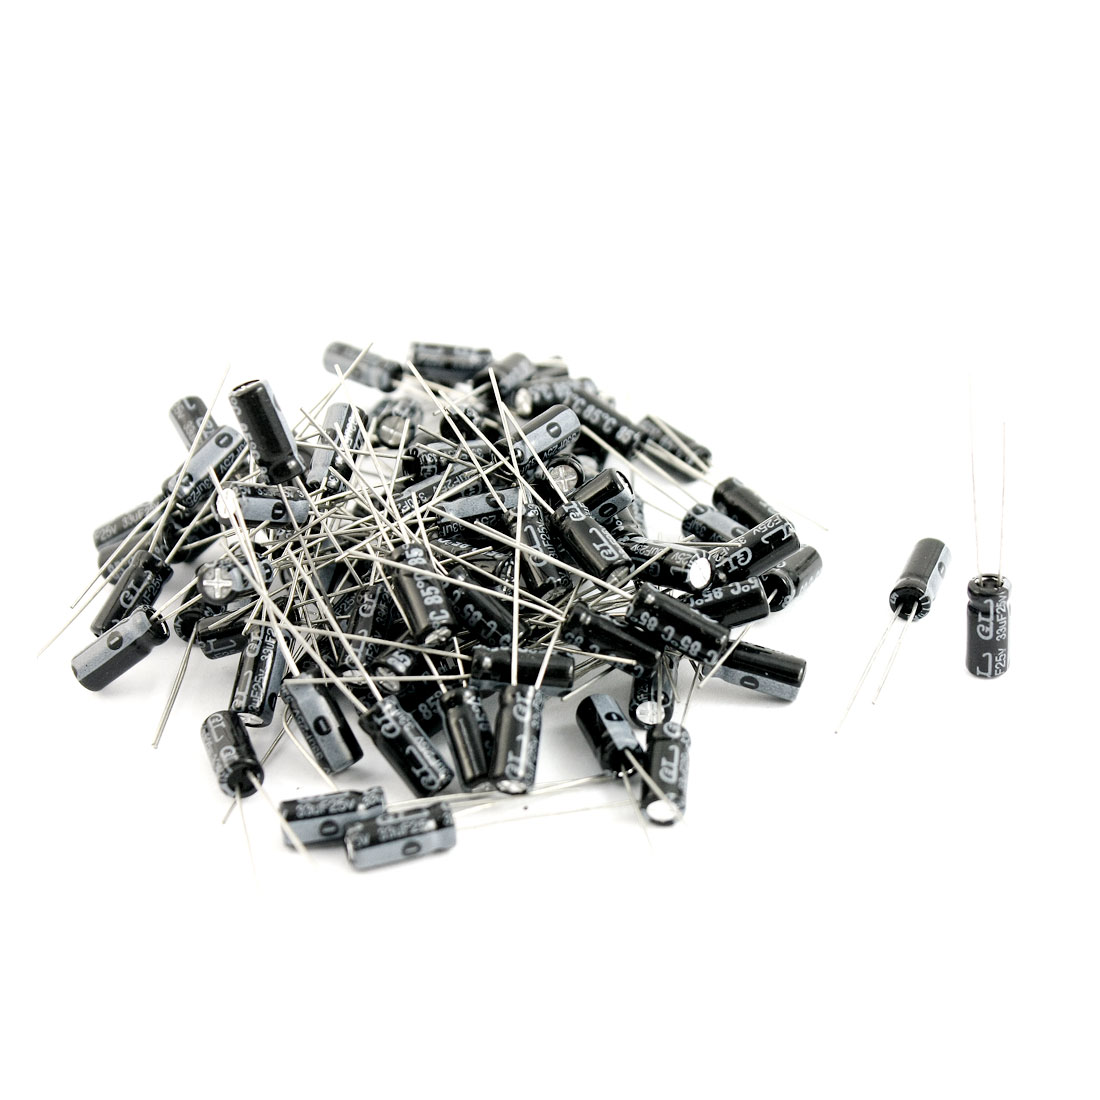 90 Pcs 33uF 25V 85C Radial Electrolytic Capacitors Black 5x11mm